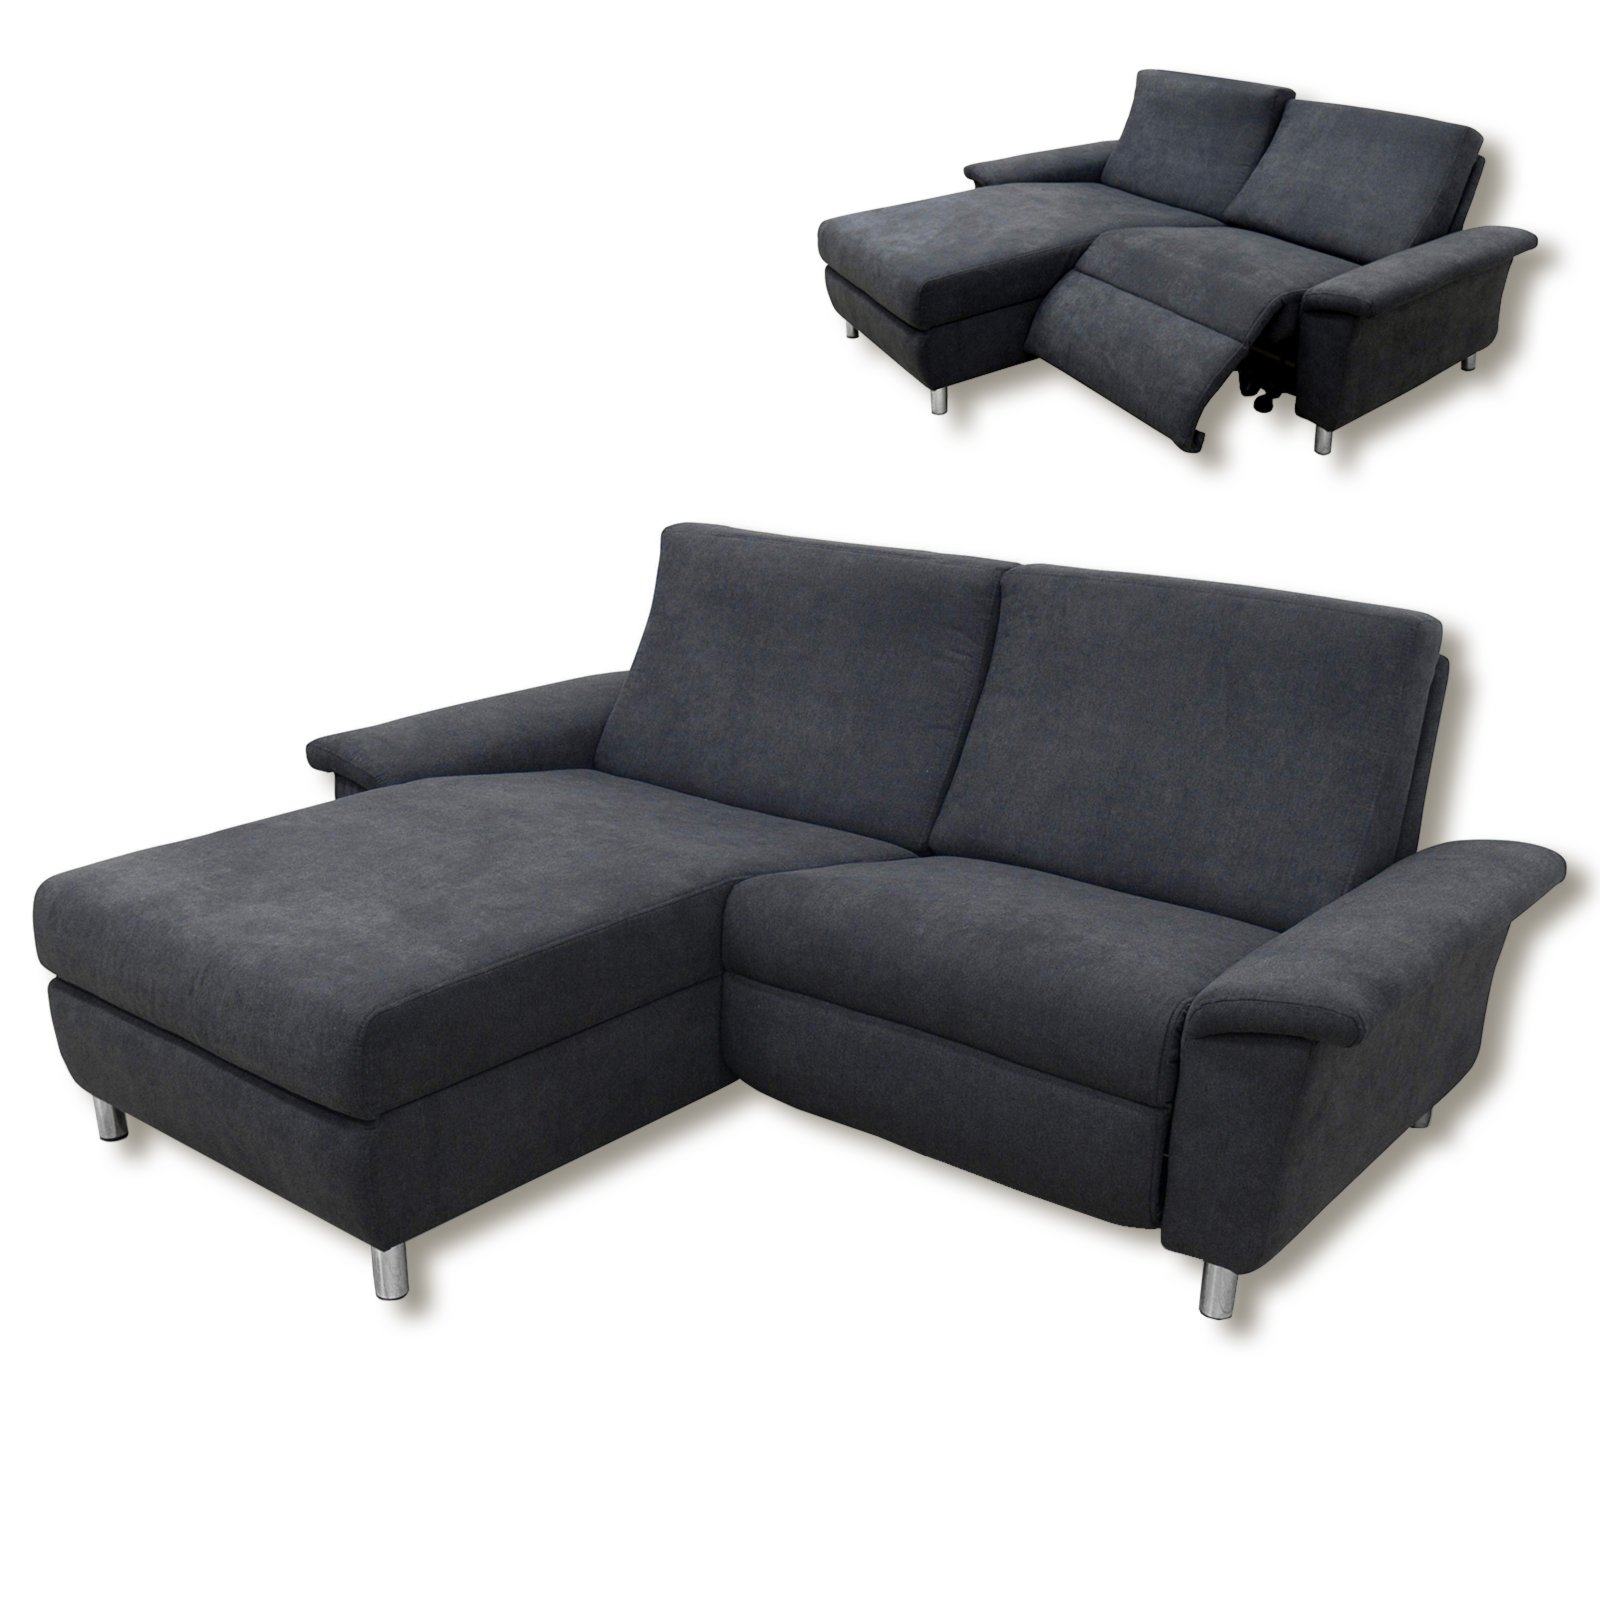 ecksofa mit relaxfunktion sonstige preisvergleiche. Black Bedroom Furniture Sets. Home Design Ideas